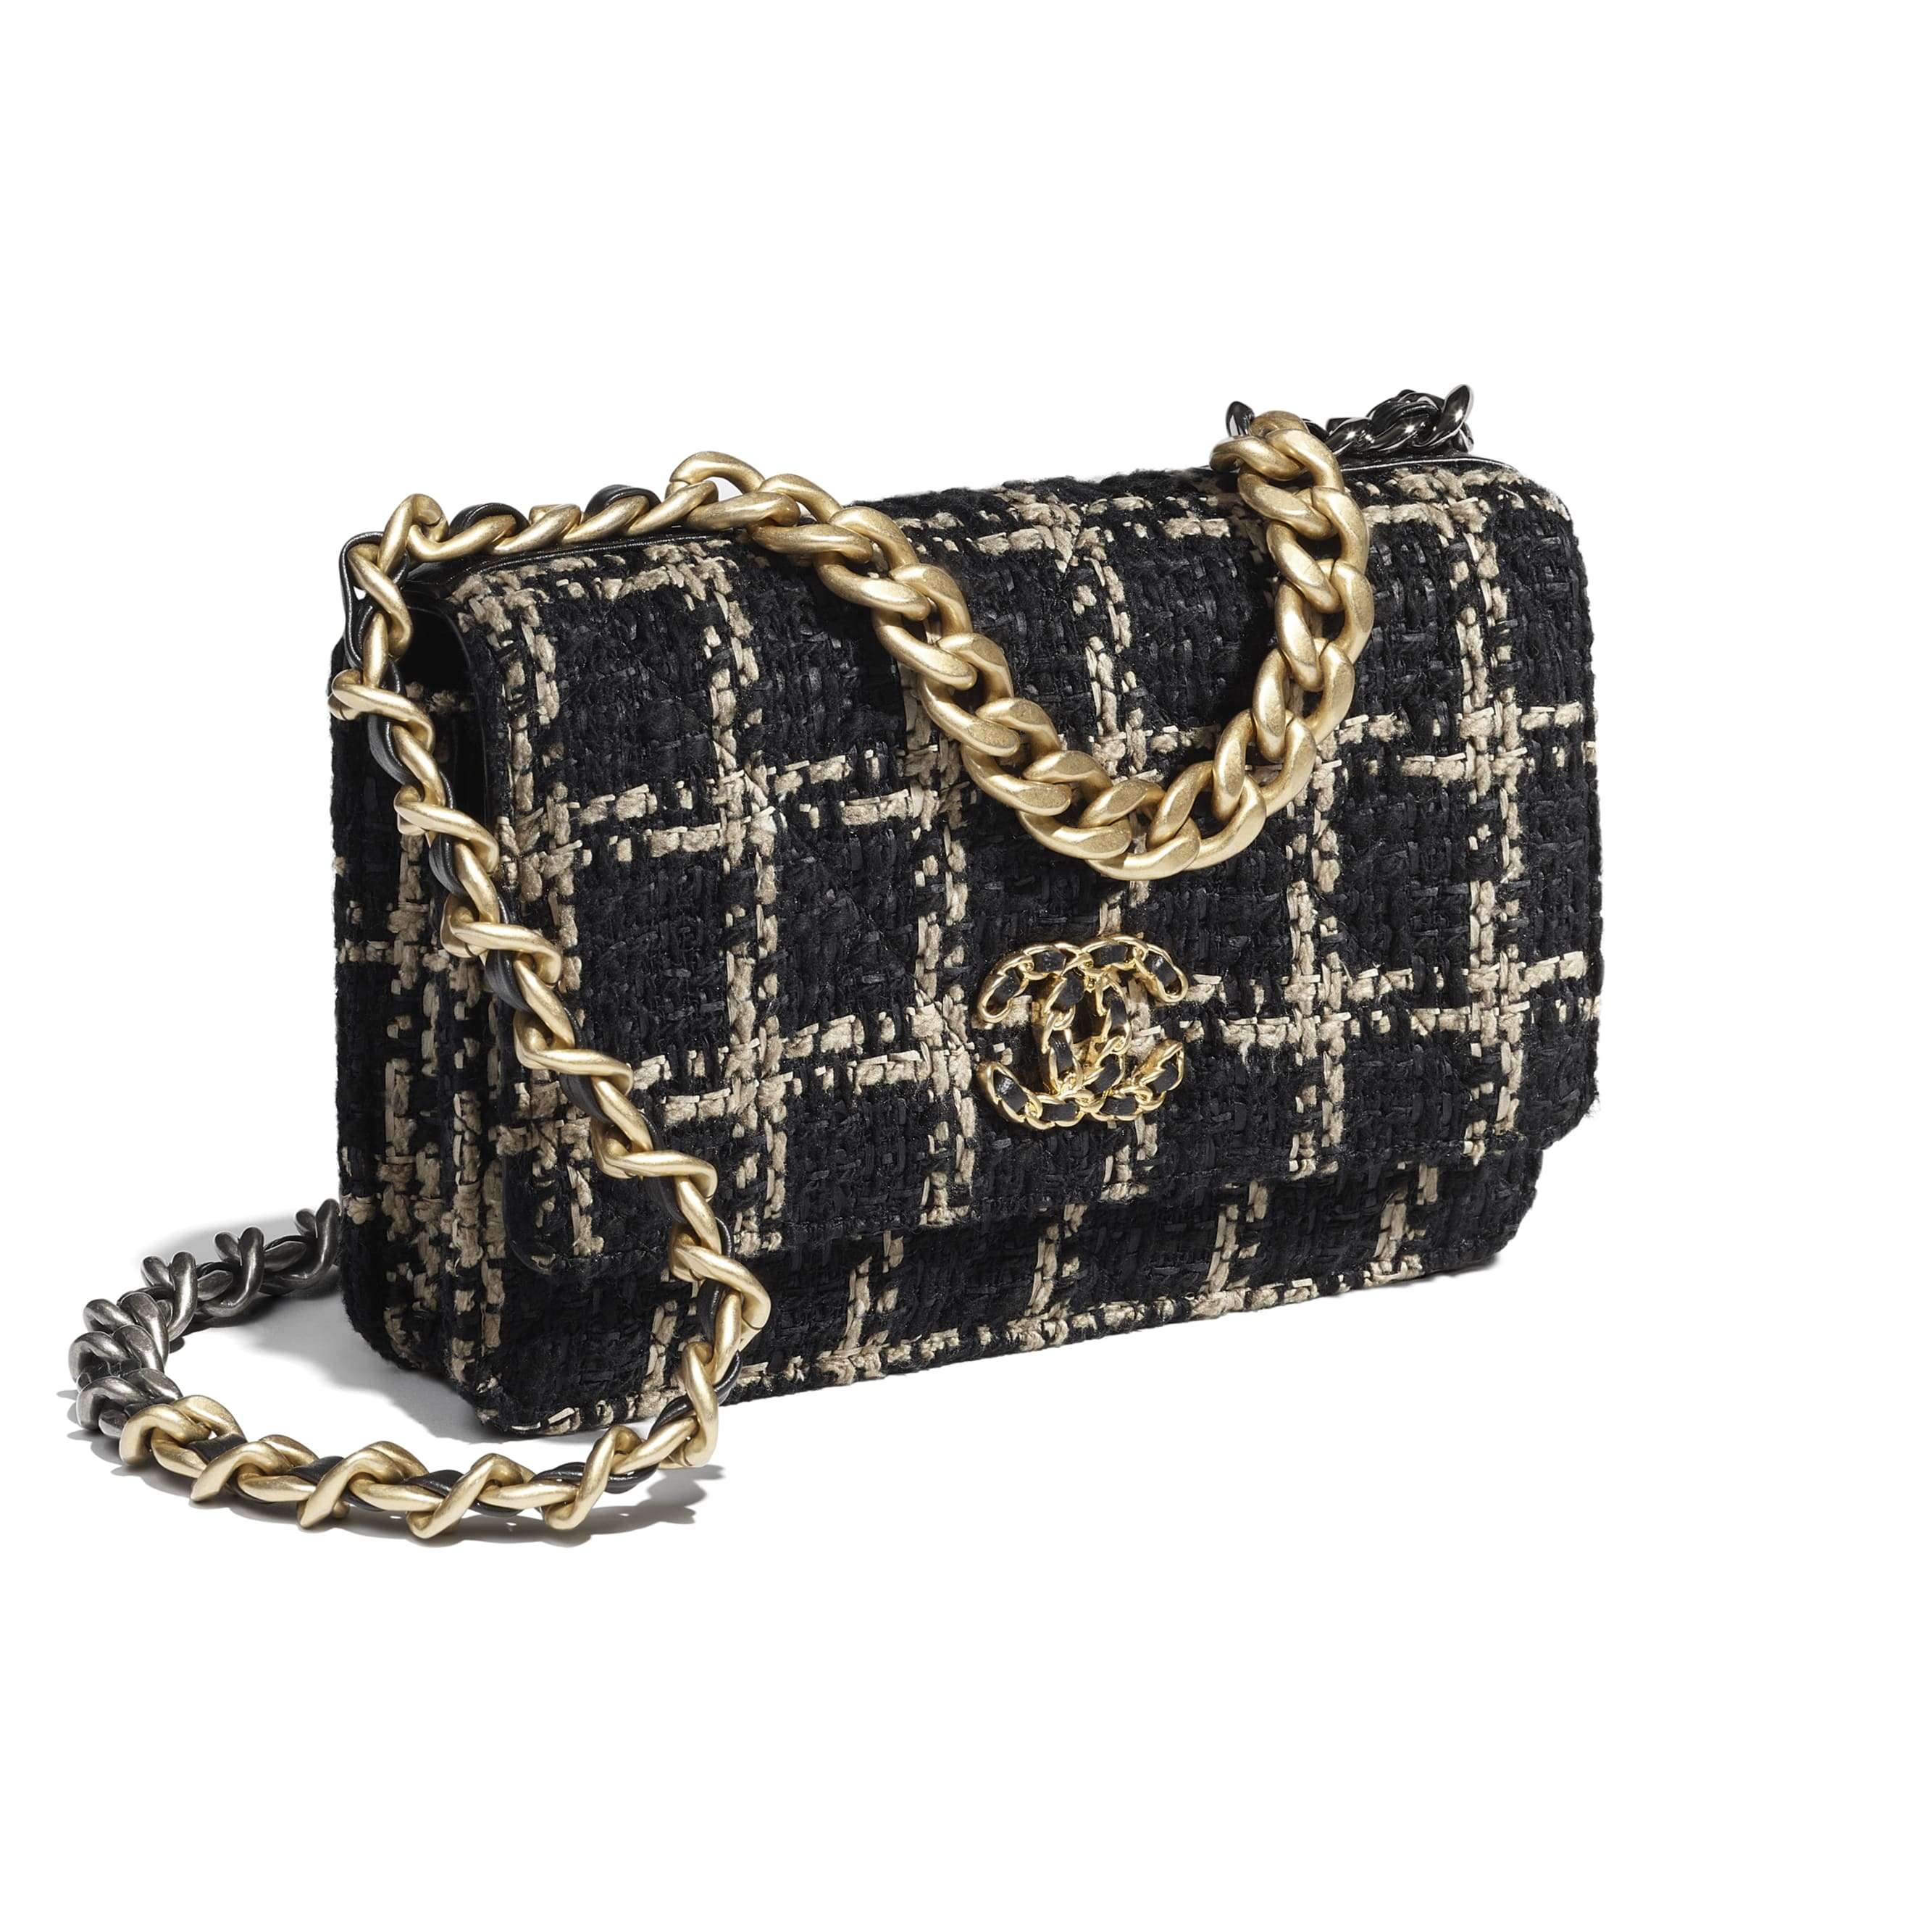 CHANEL 19 Wallet on Chain - Black & Beige - Tweed, Gold-Tone, Silver-Tone & Ruthenium-Finish Metal - CHANEL - Extra view - see standard sized version